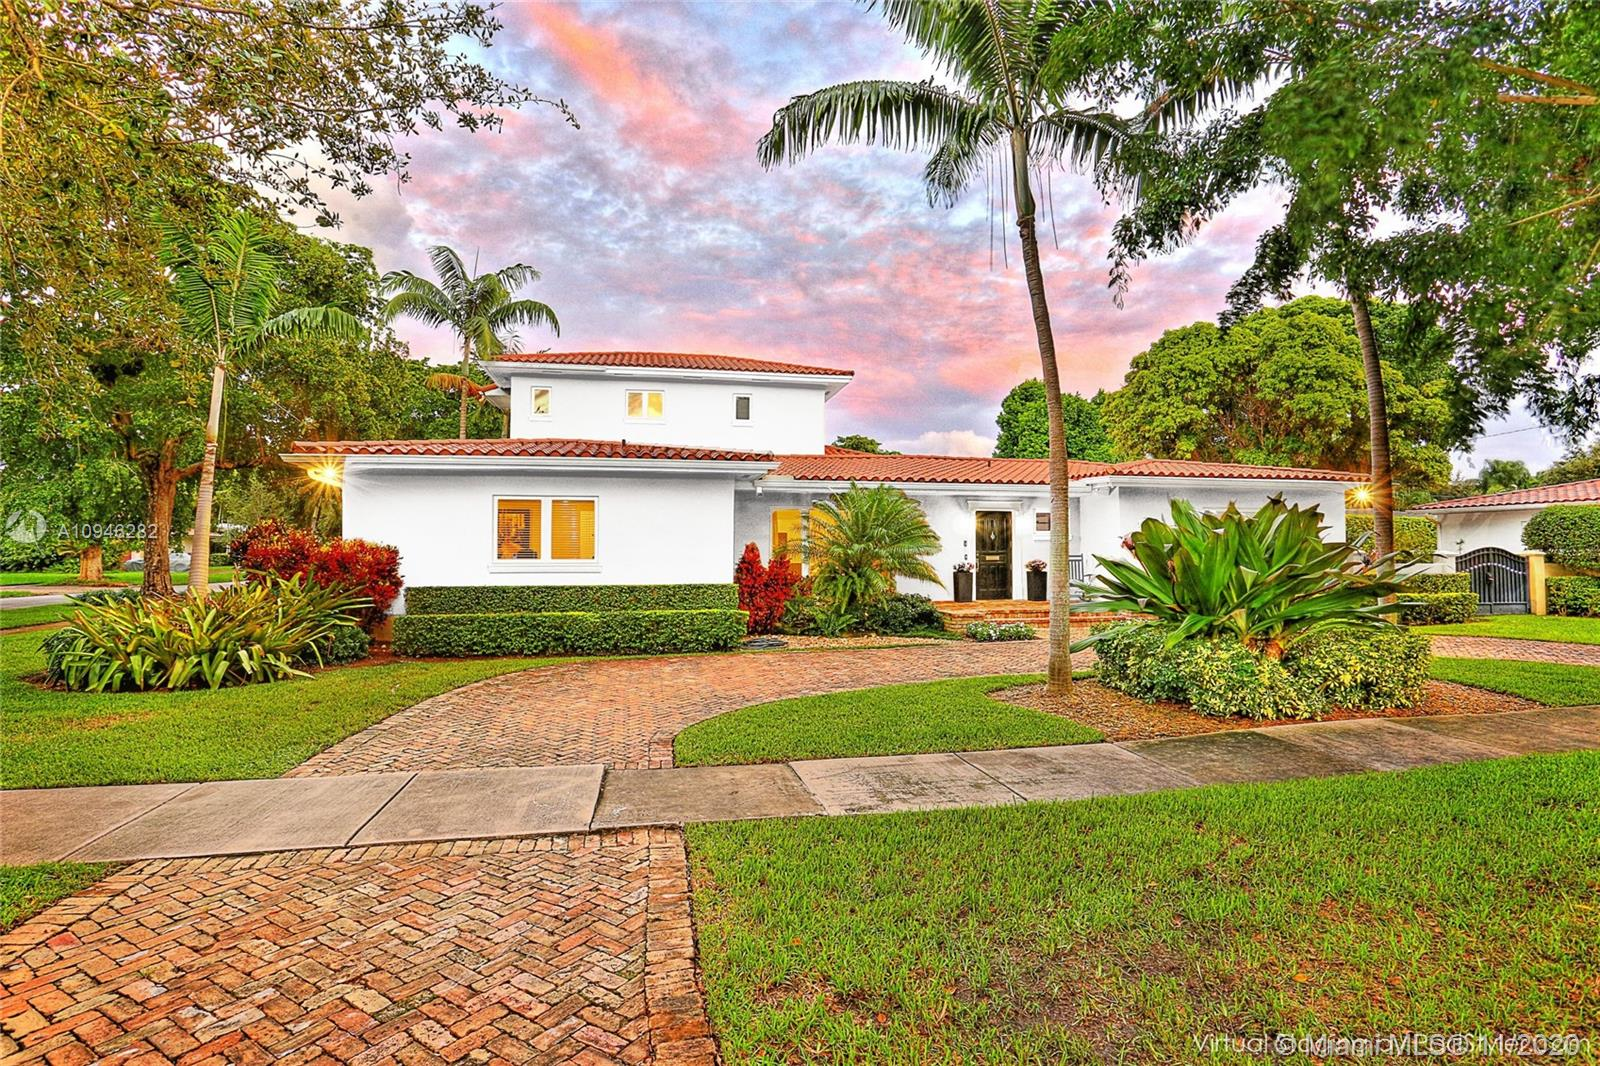 5601 San Vicente St, Coral Gables, Florida 33146, 5 Bedrooms Bedrooms, ,4 BathroomsBathrooms,Residential,For Sale,5601 San Vicente St,A10946282